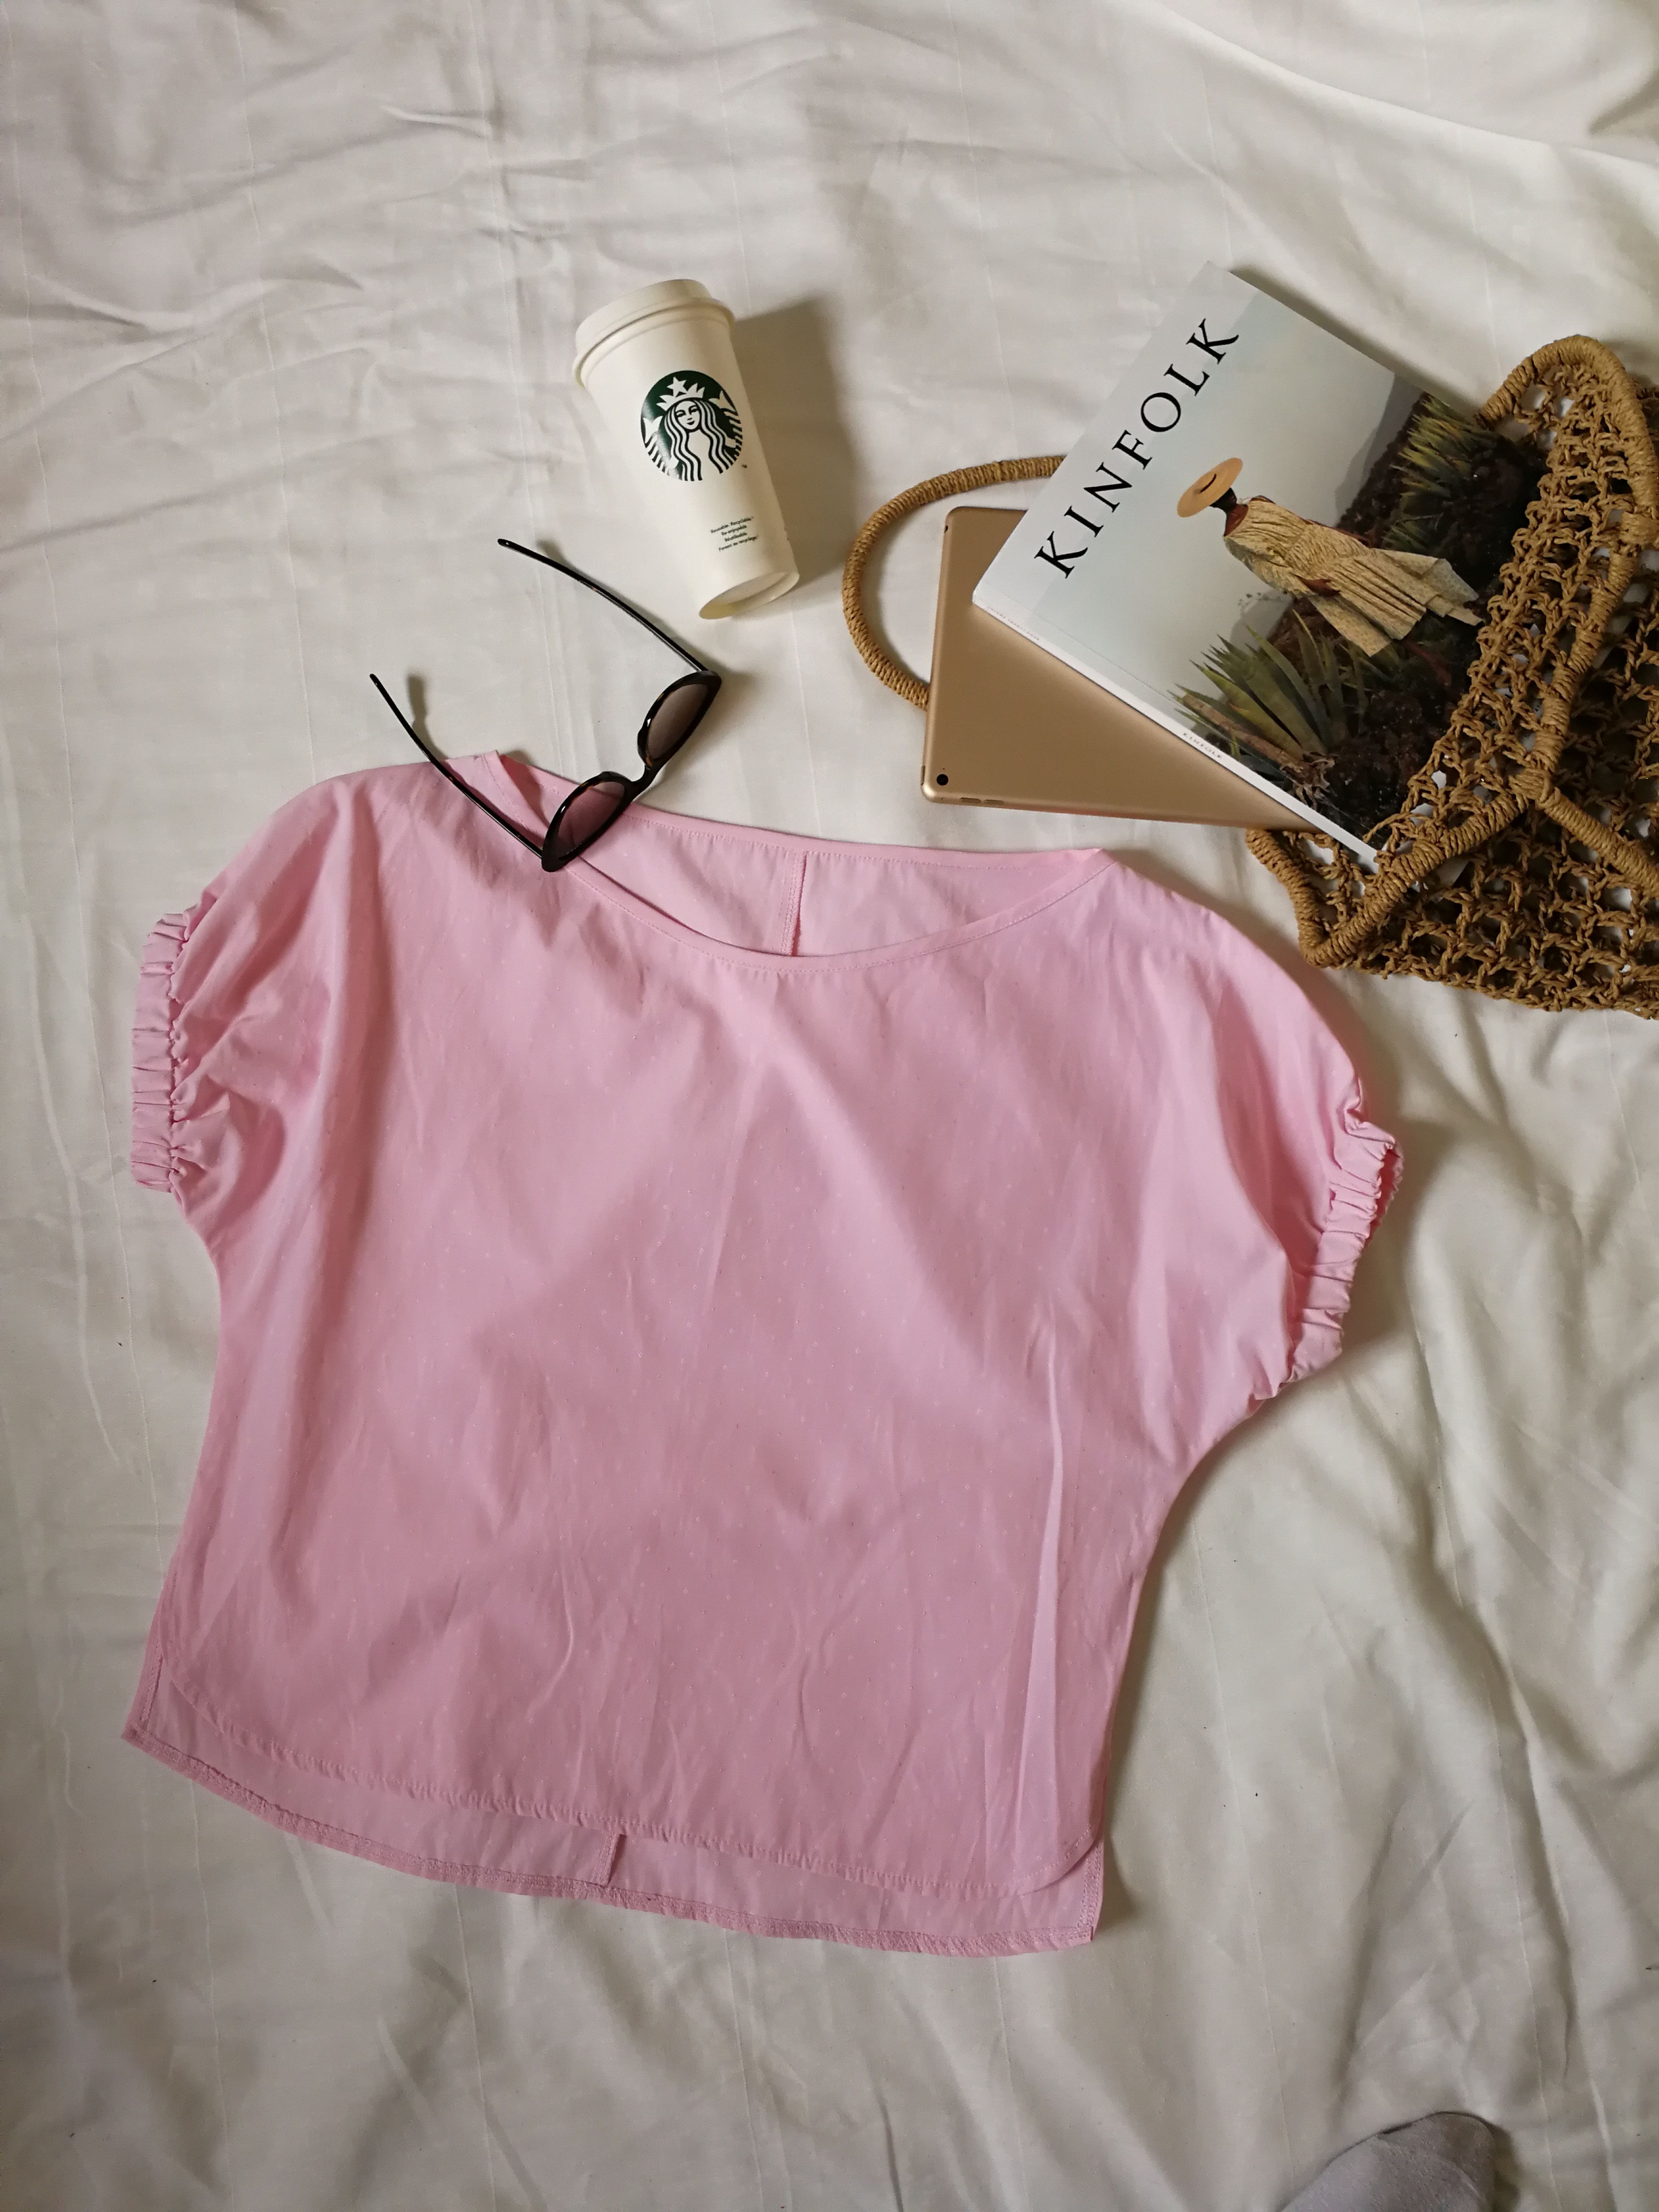 848fd9db52c Light Pink One Shoulder Tops, Women Summer Blouses, Loose Women Top, Boat  Neck Short Sleeves Shirt, Office Blouses, Cotton Casual Shirts